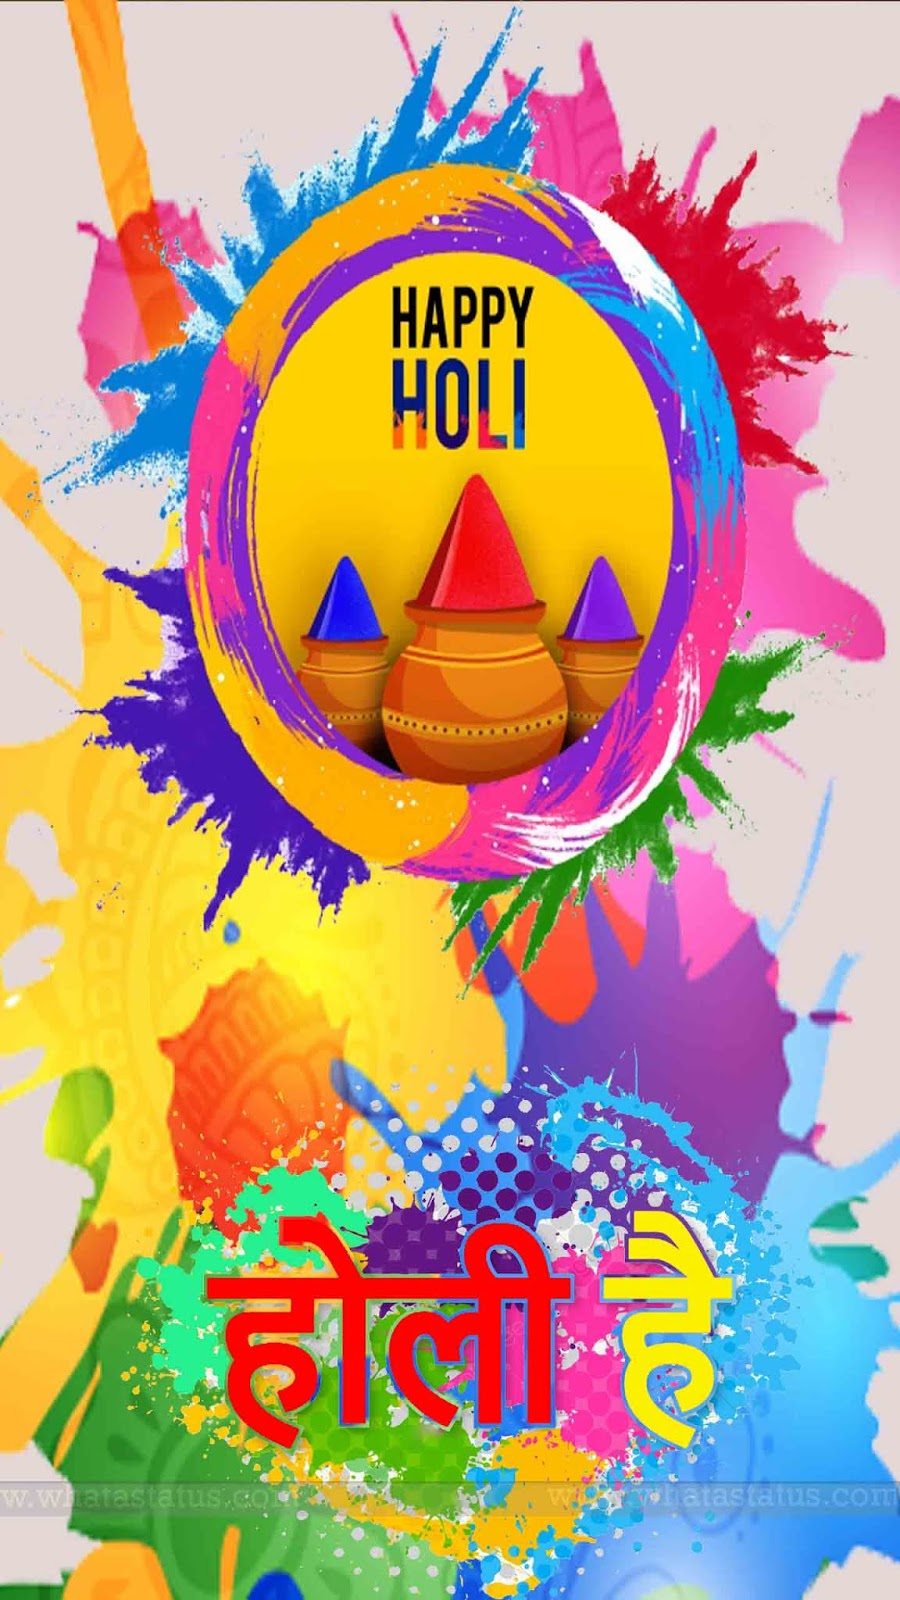 holi special hd event picture